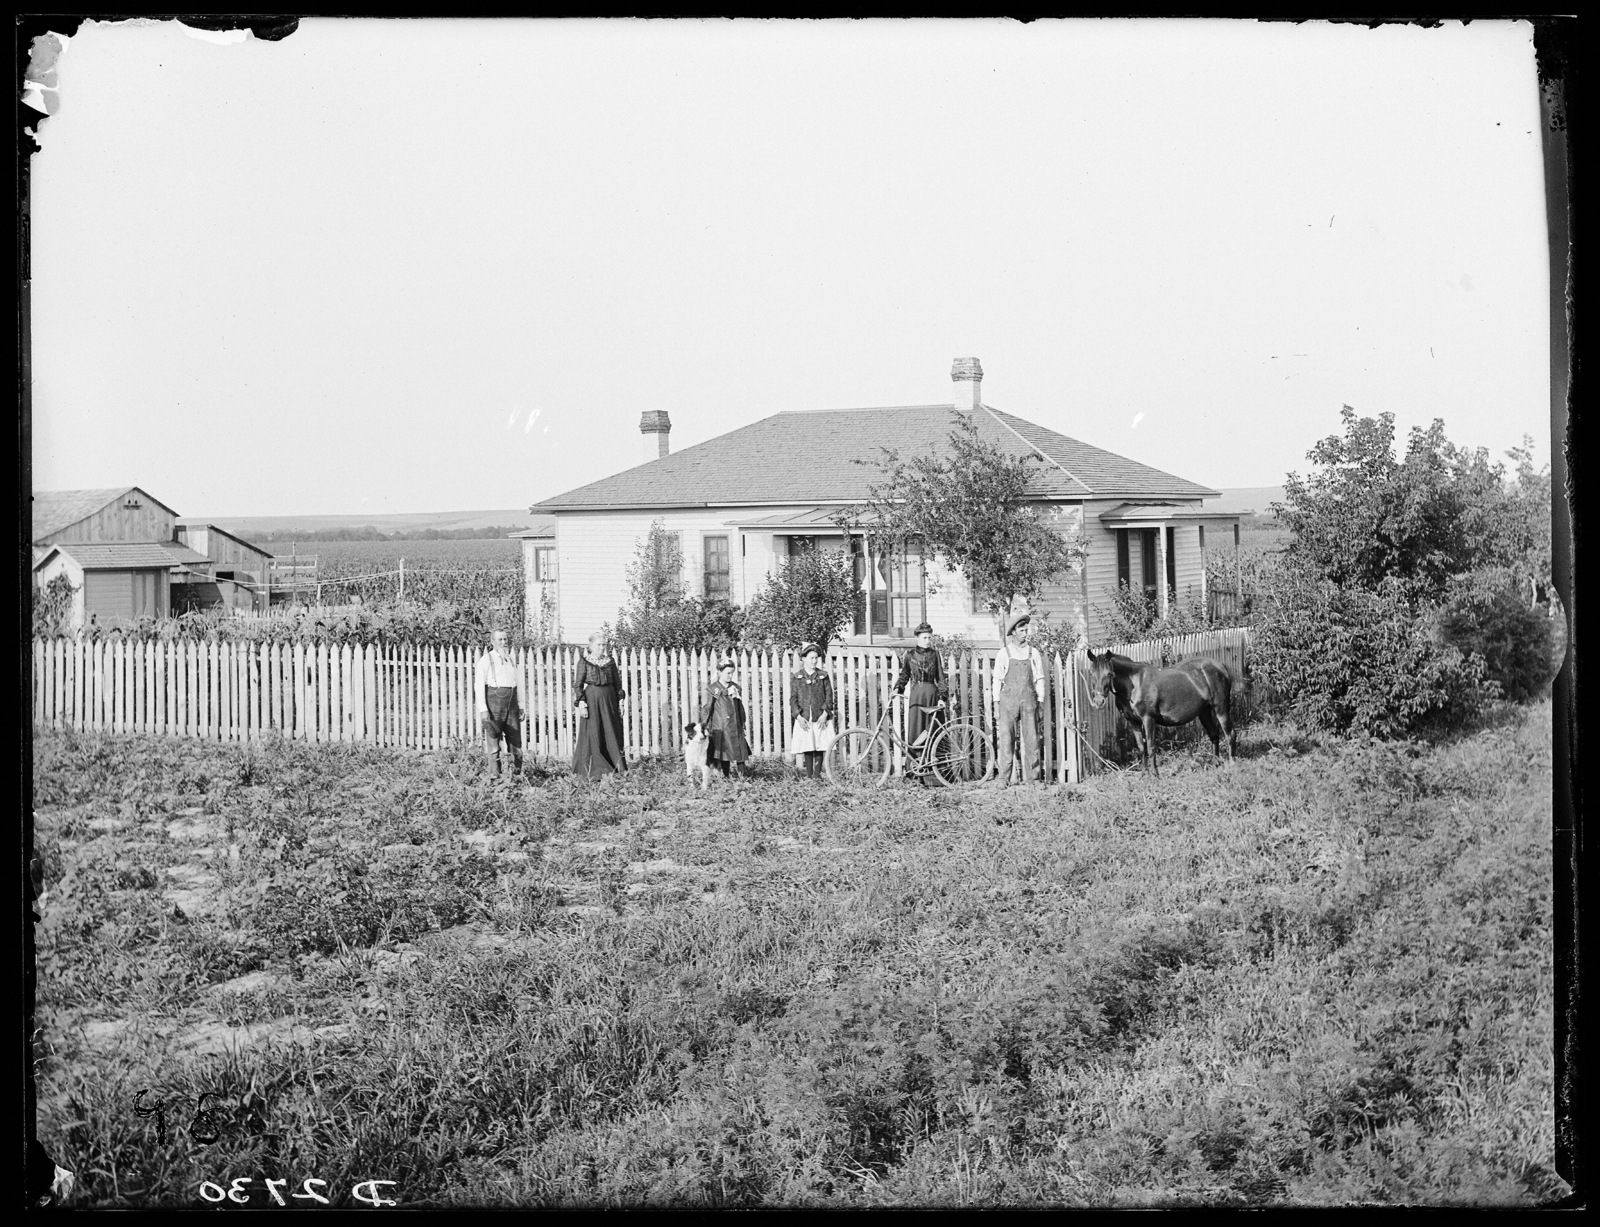 Family in front of the A.L. Fitch home, Watertown, Nebraska